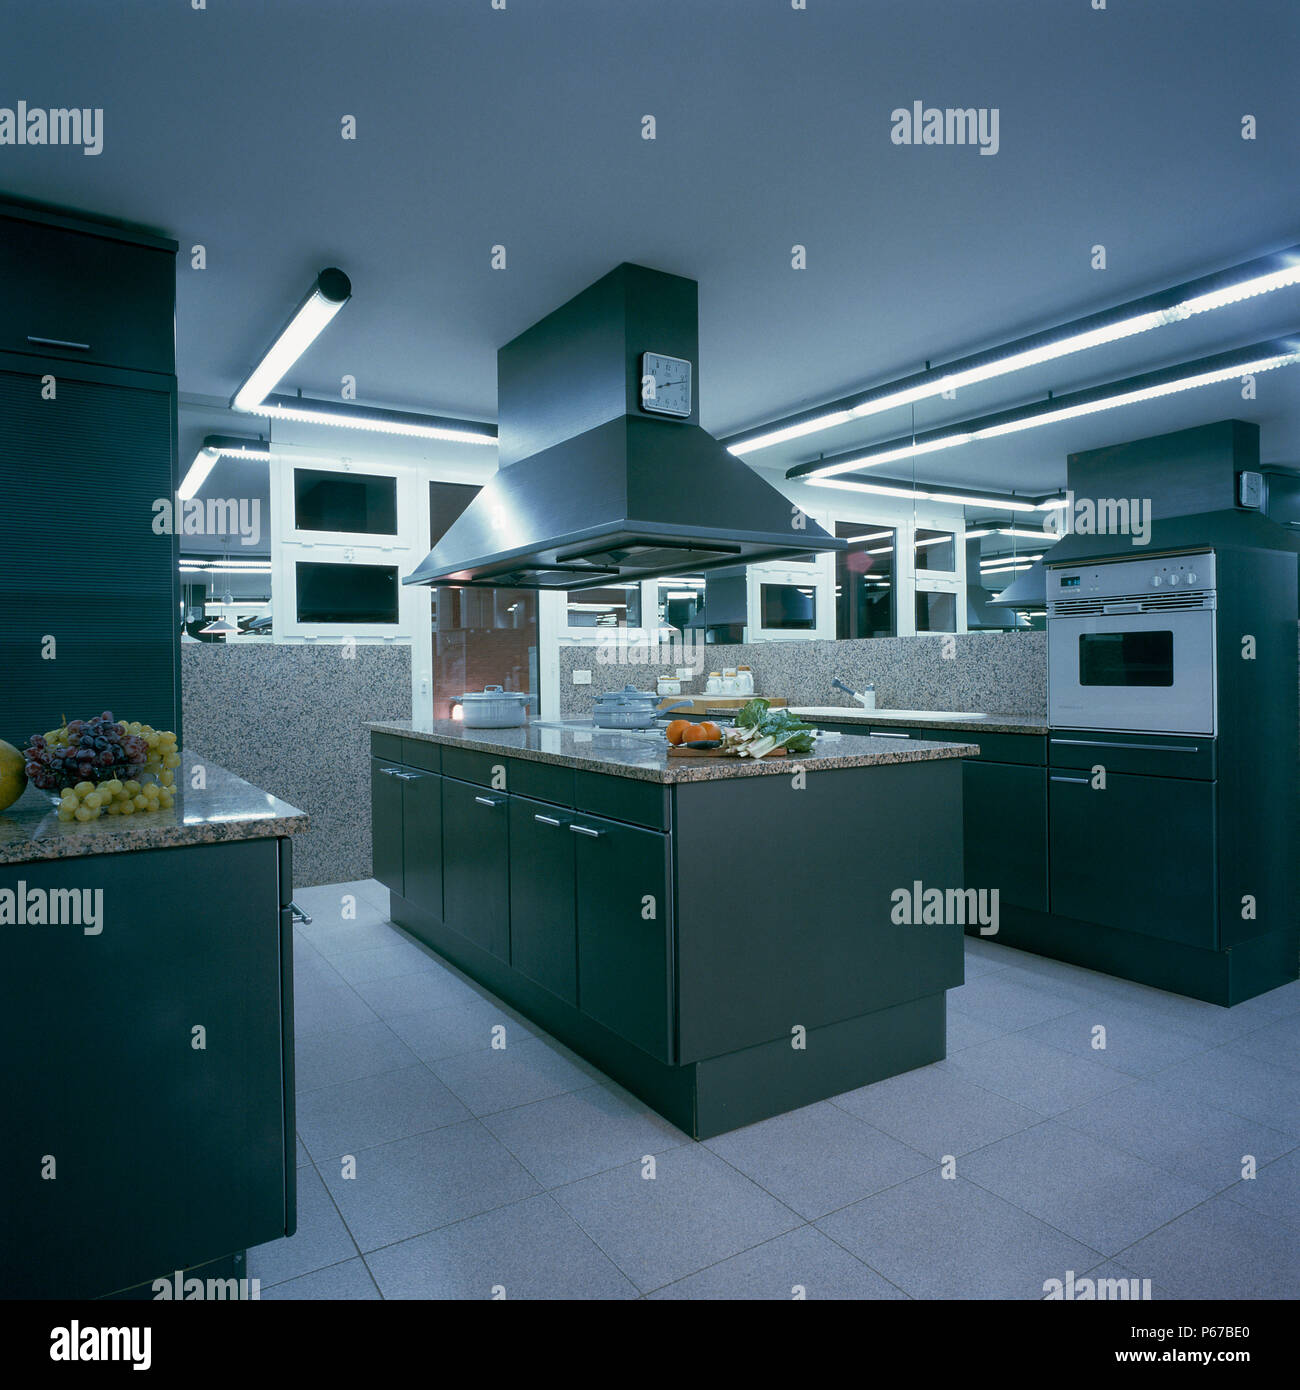 Modular Kitchen Stock Photos & Modular Kitchen Stock Images - Alamy